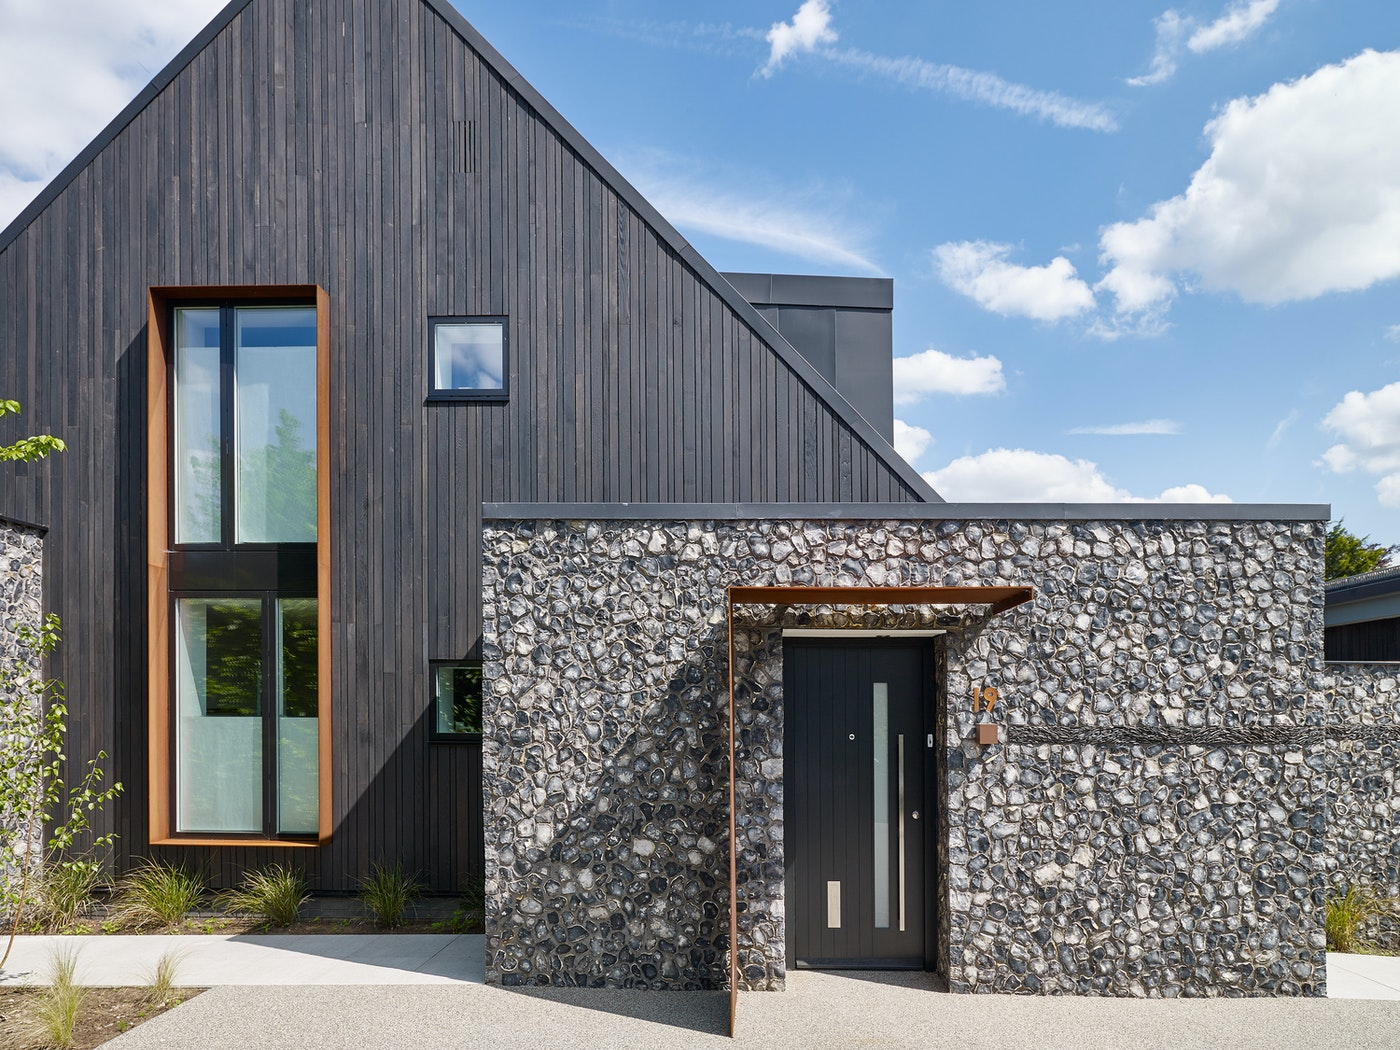 Here the door is highlighted by stunning flint work and the rest of the building includes burnt cedar cladding